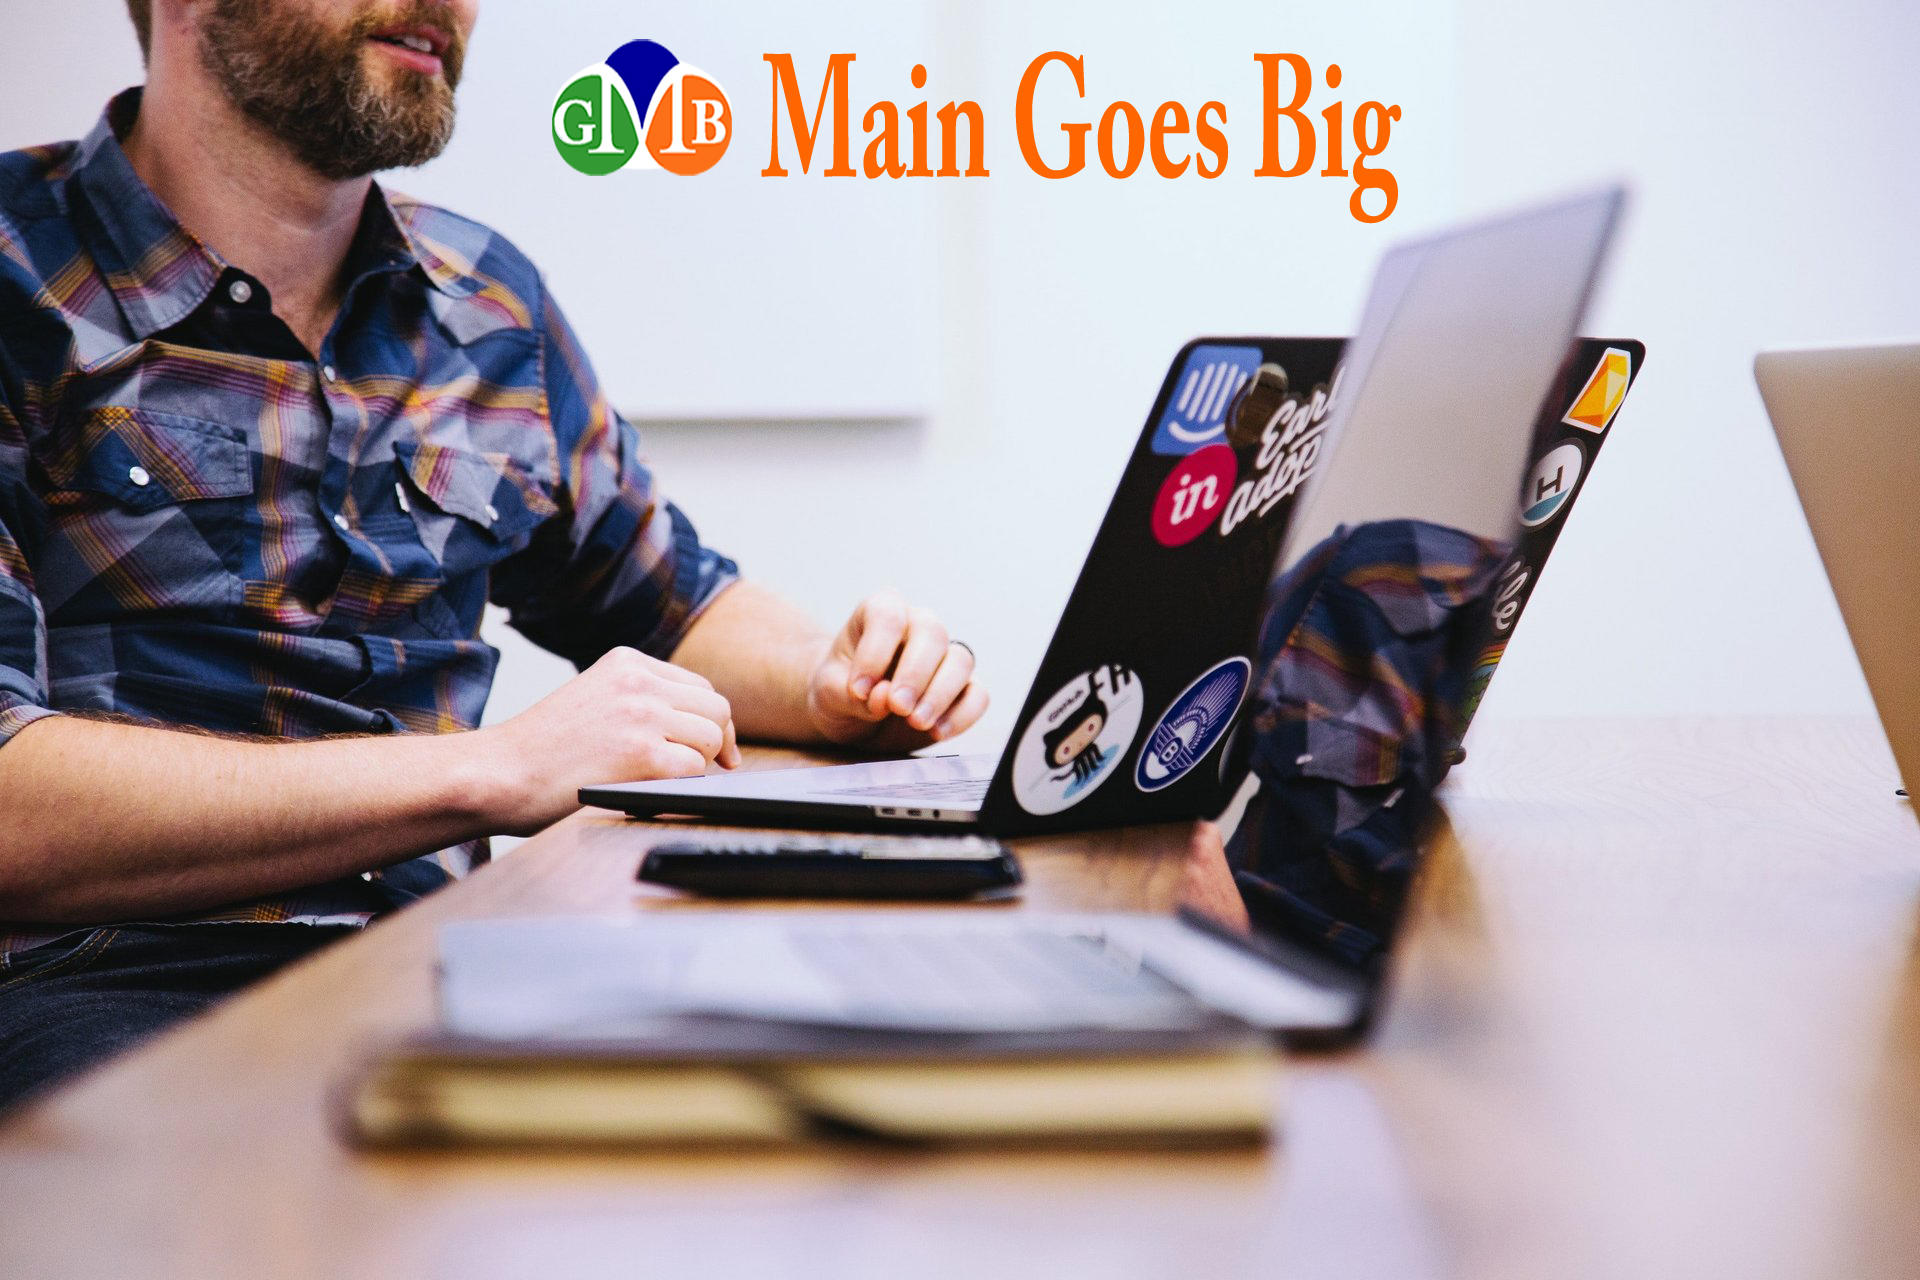 Main Goes Big Digital Marketing Agency image 1